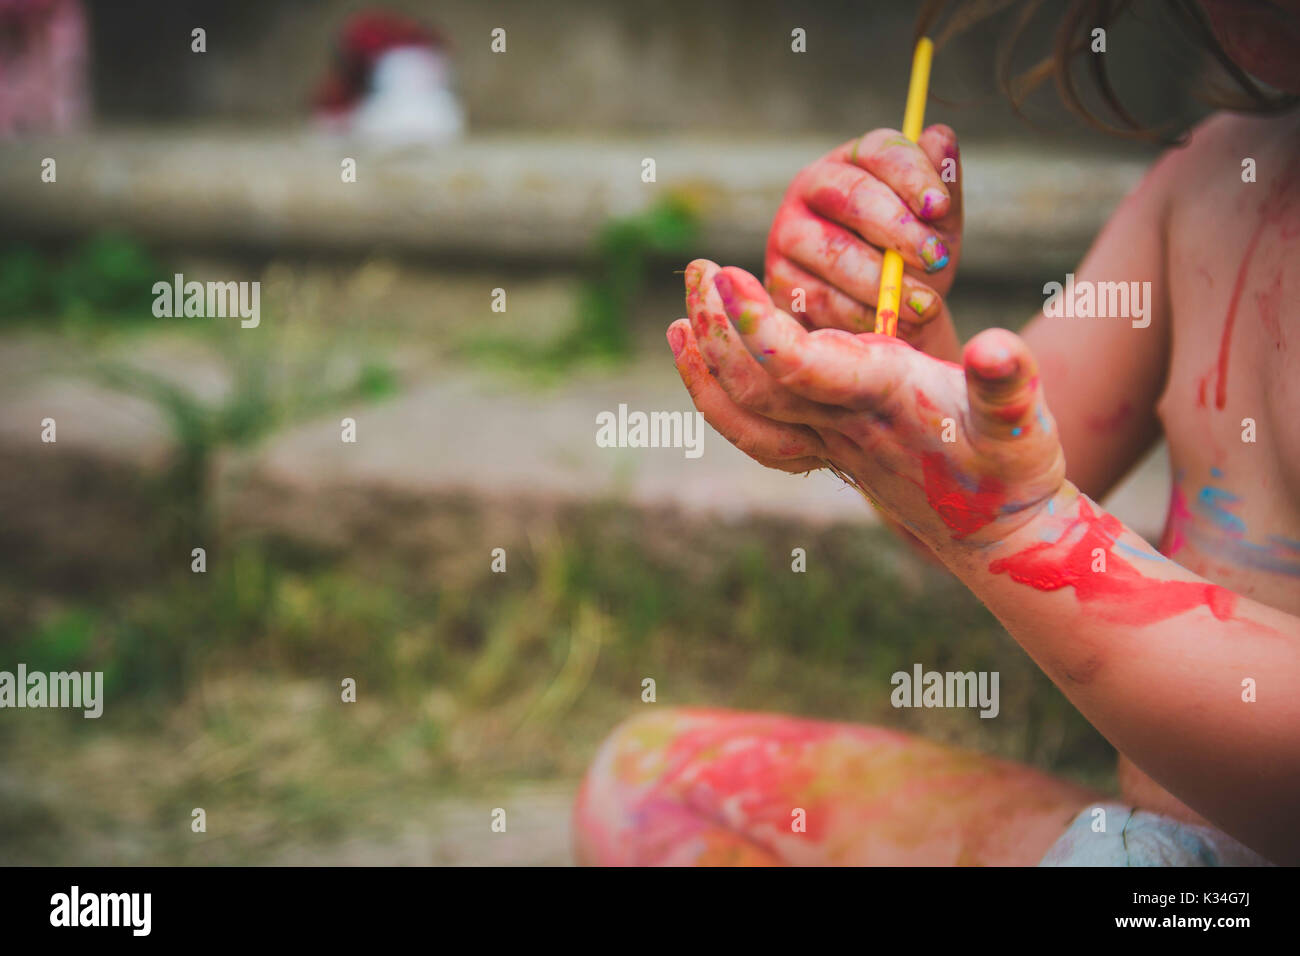 A child paints on her hand. - Stock Image